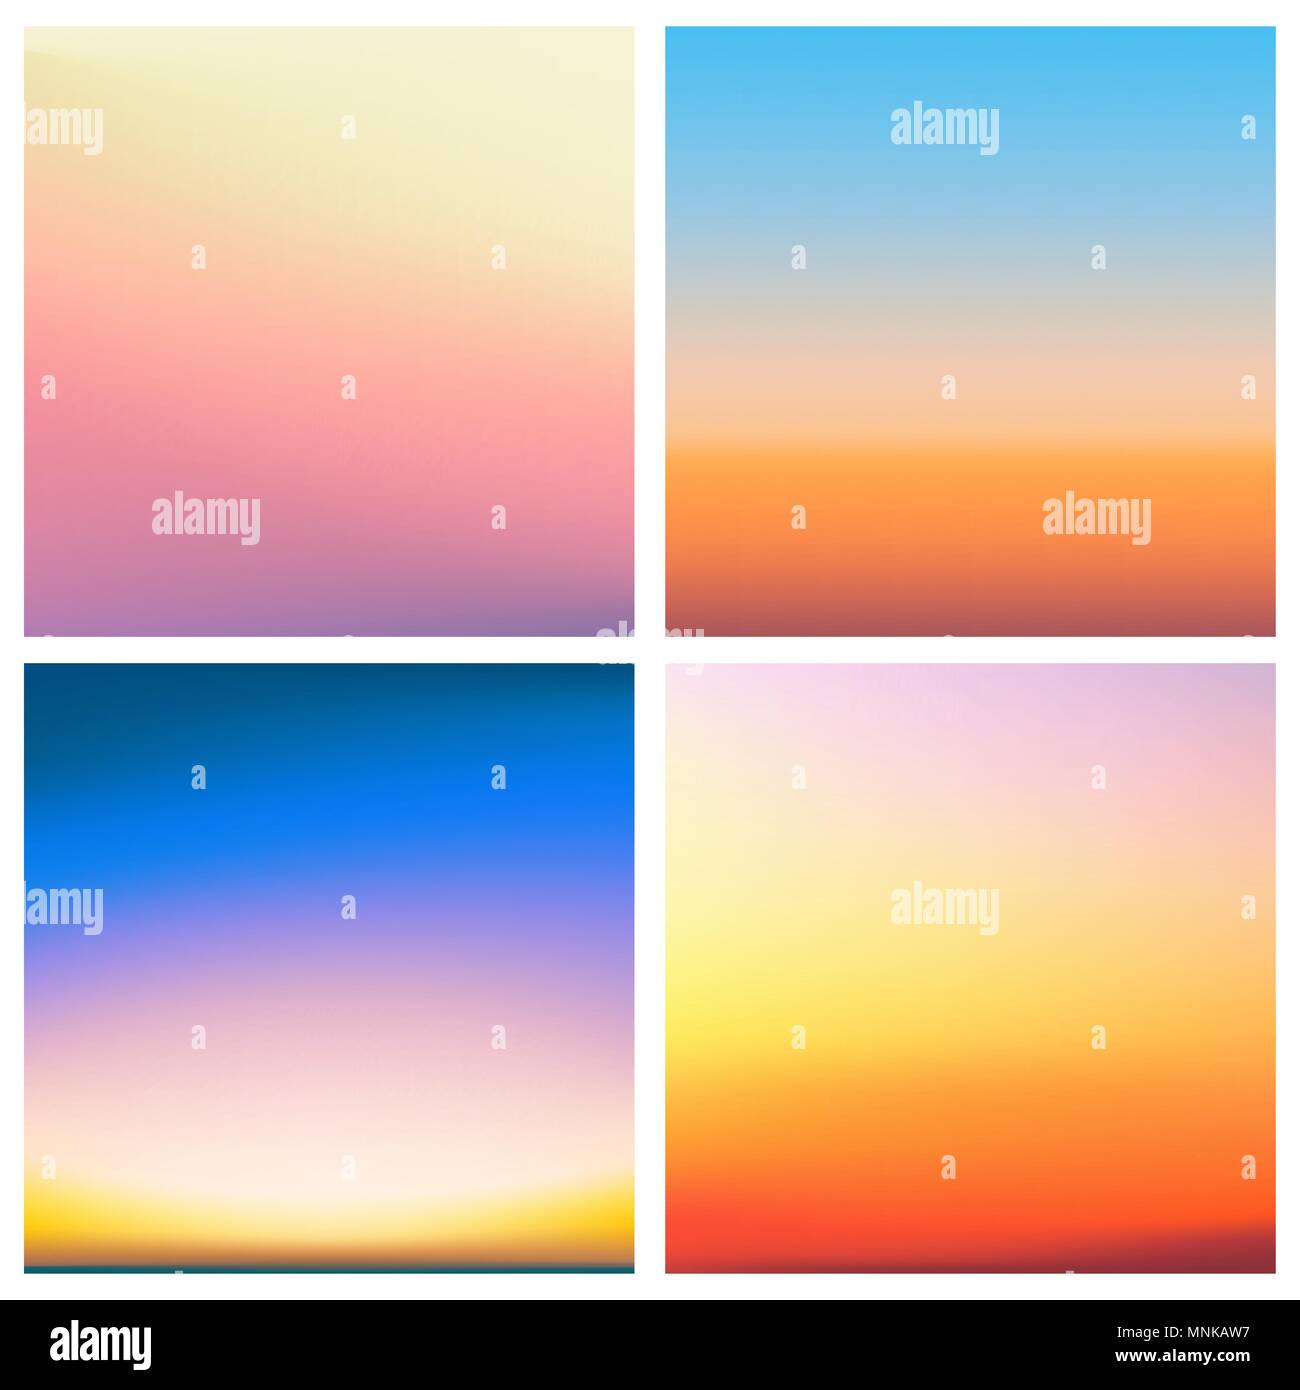 Abstract Vector Sunset Blurred Background Set Square Blurred